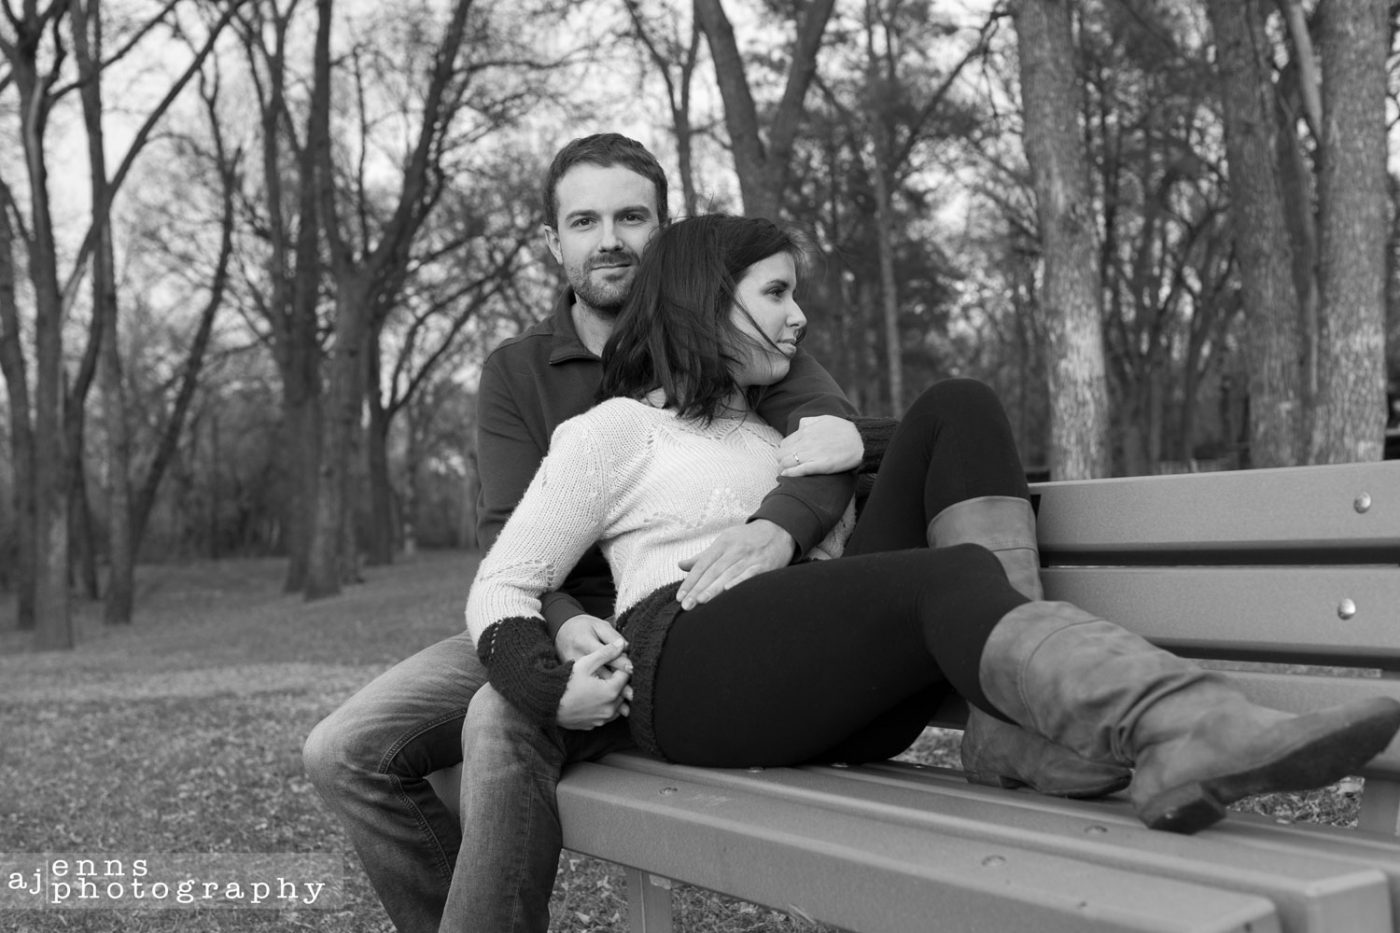 The two love birds sit on a park